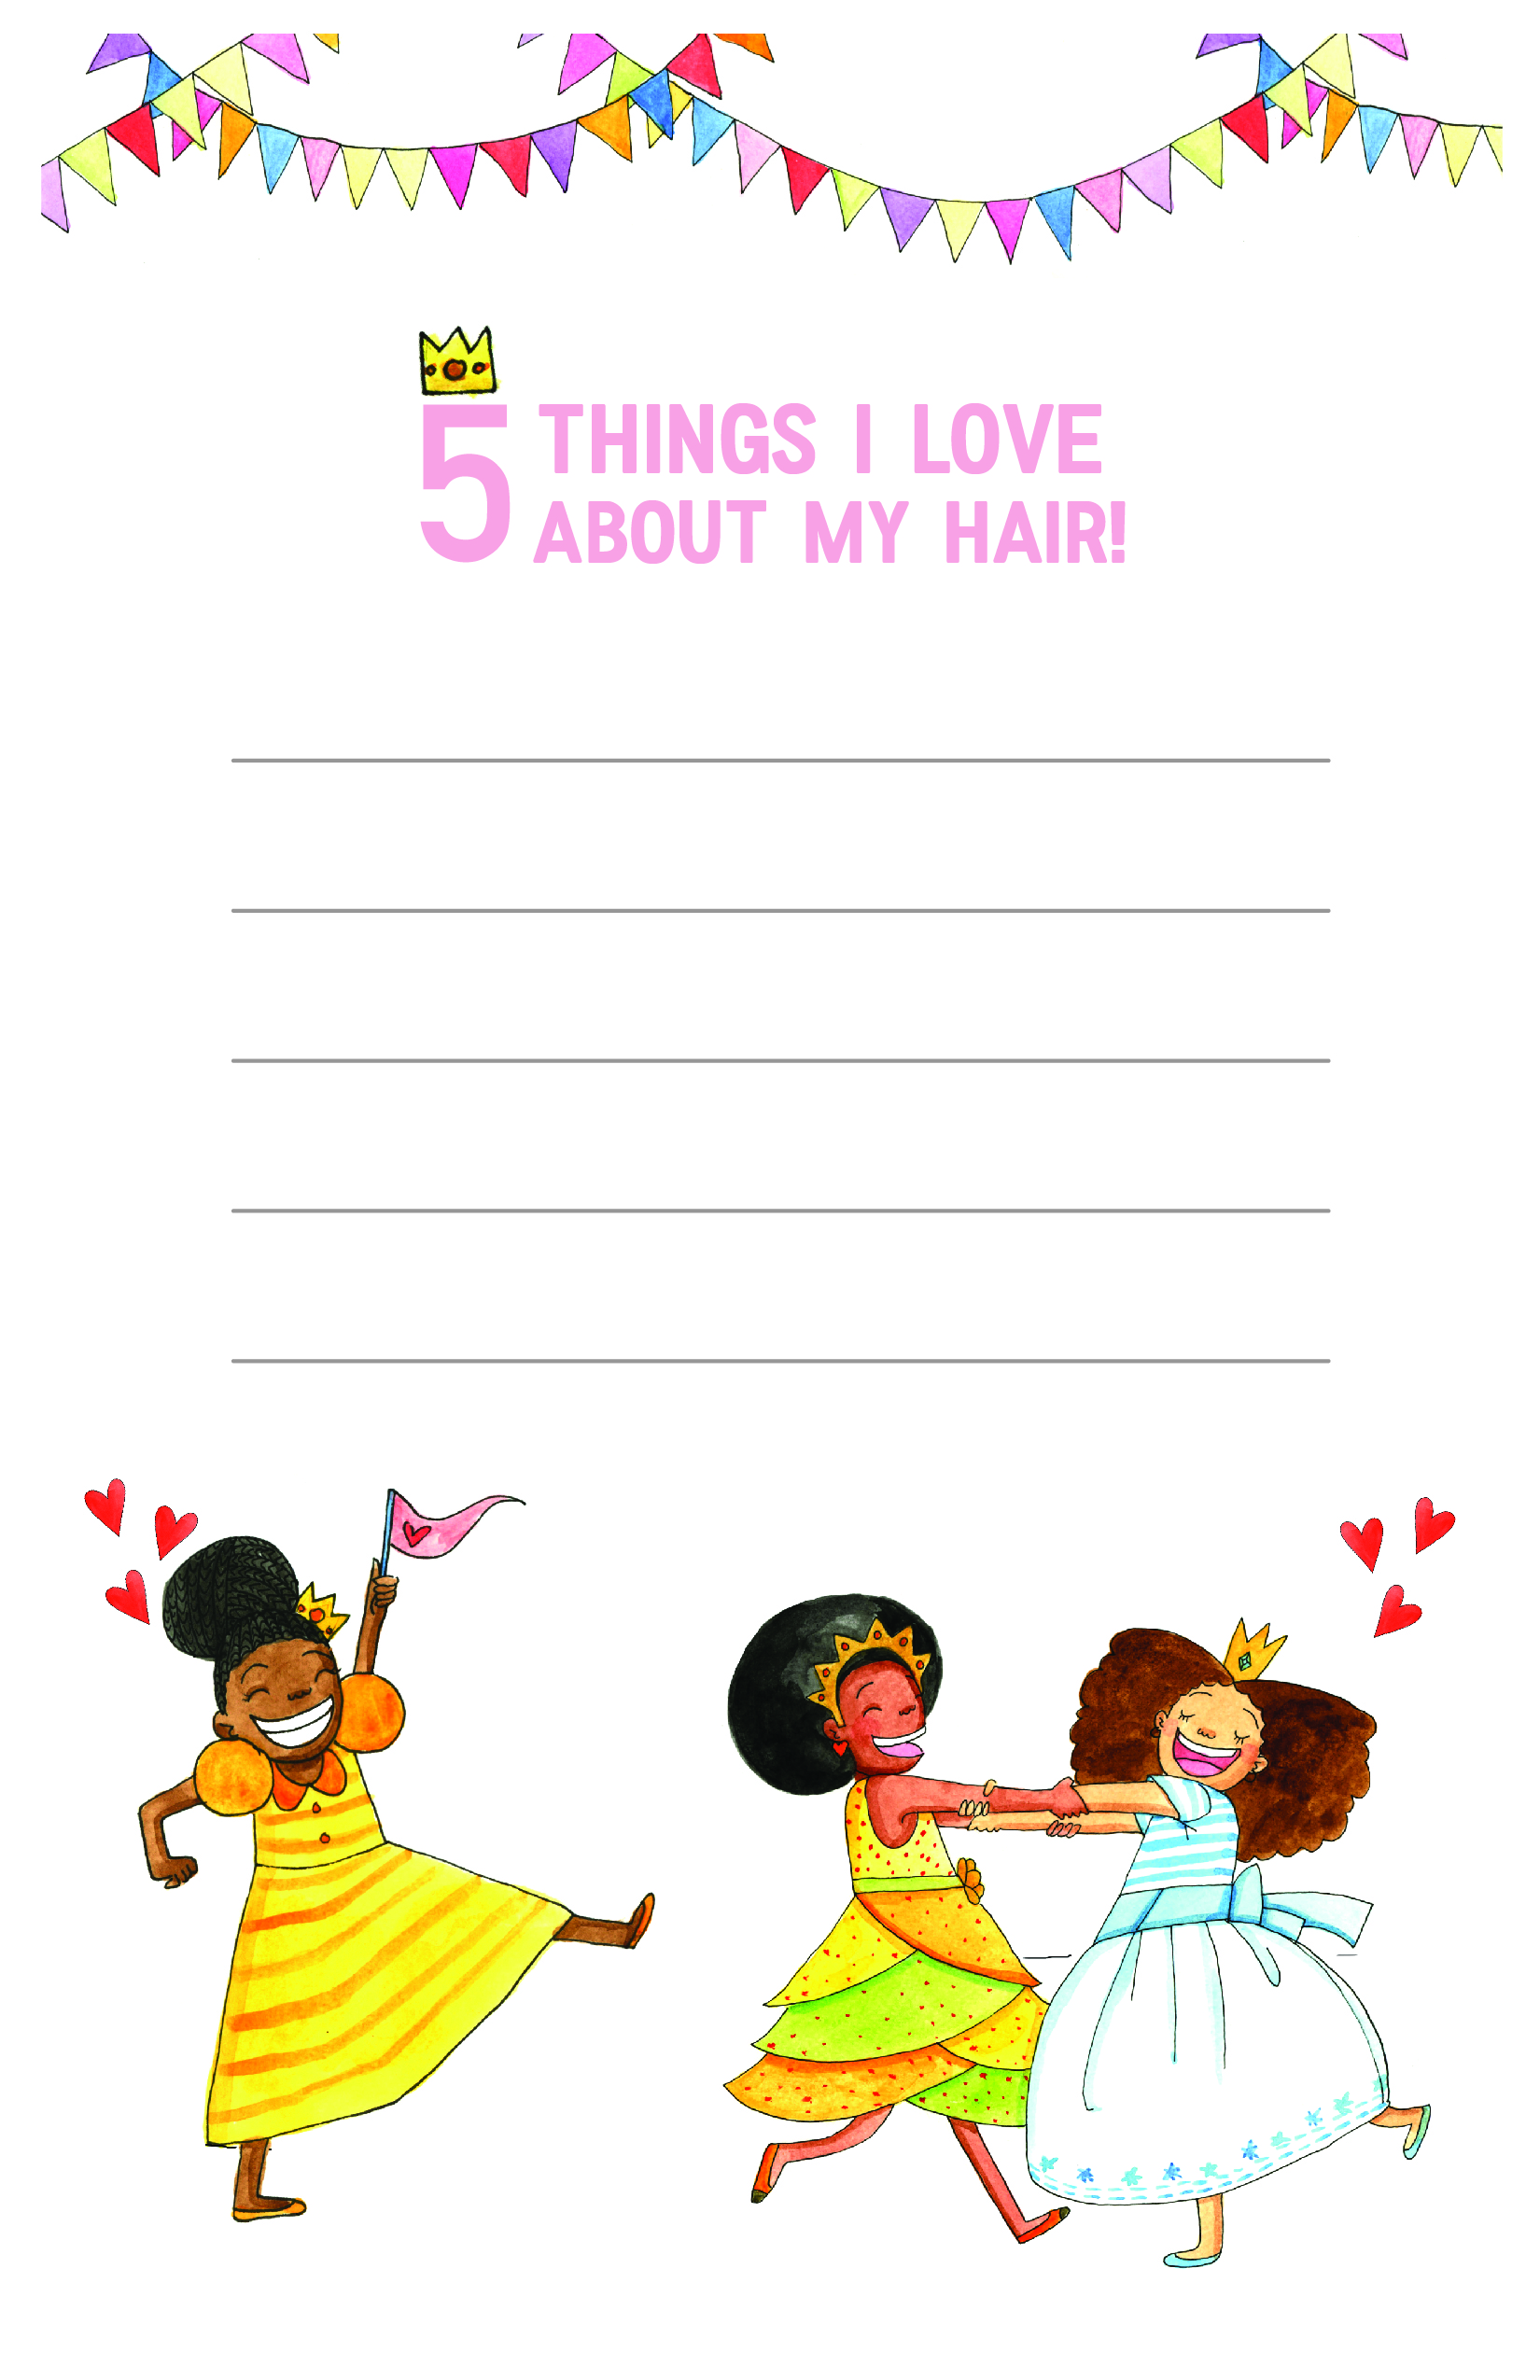 A FUN EXERCISE FOR YOUR PRINCESS TO THINK OF THE THINGS SHE LOVES ABOUT HER HAIR!